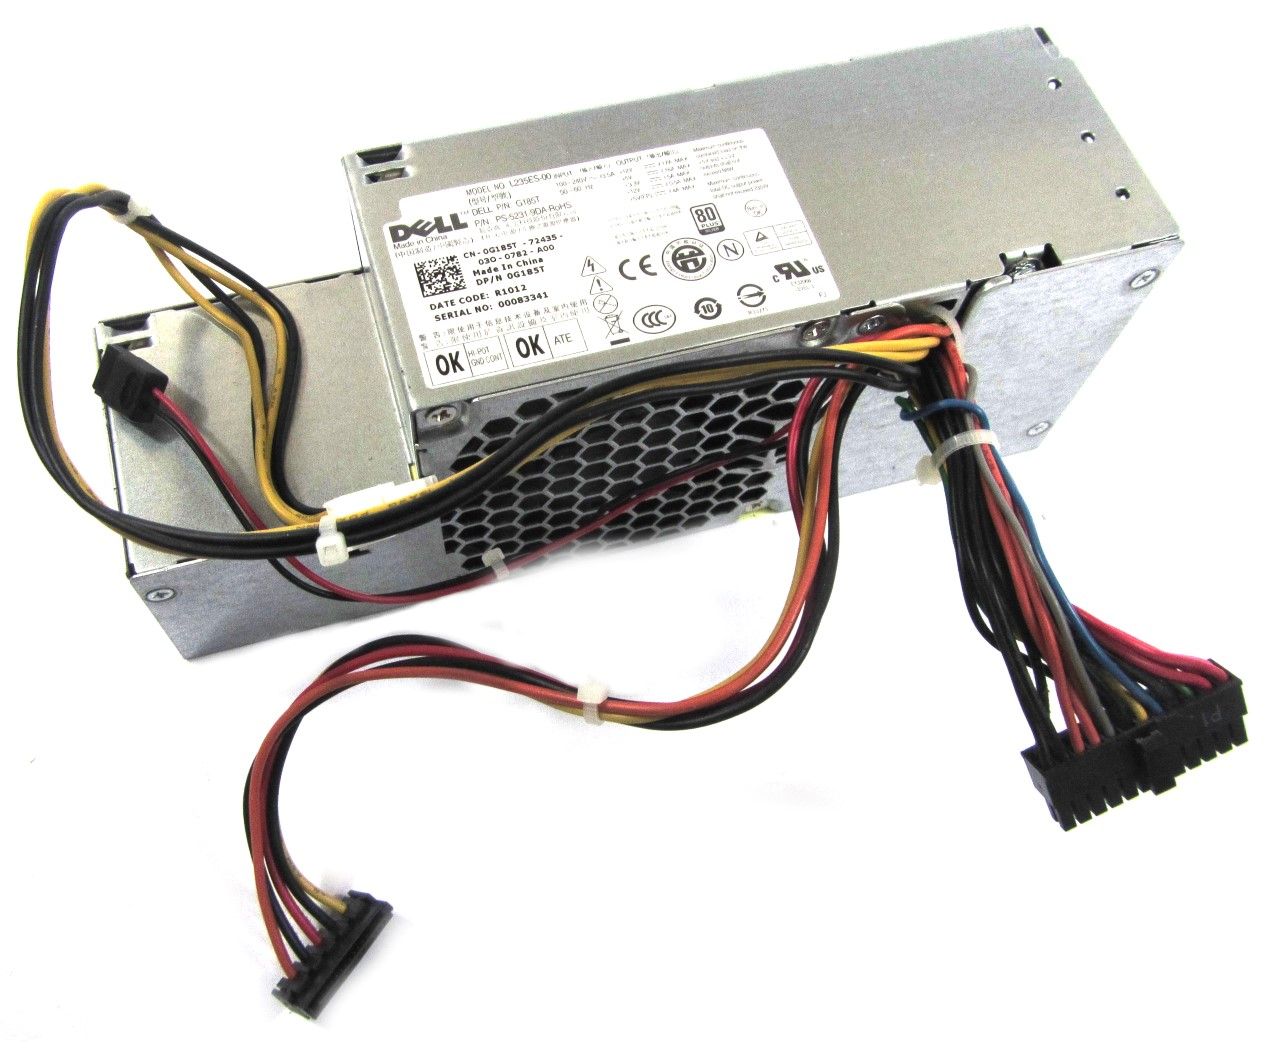 Dell G185T OptiPlex 780 SFF Small Form Factor Desktop PC 235W PSU Power Supply